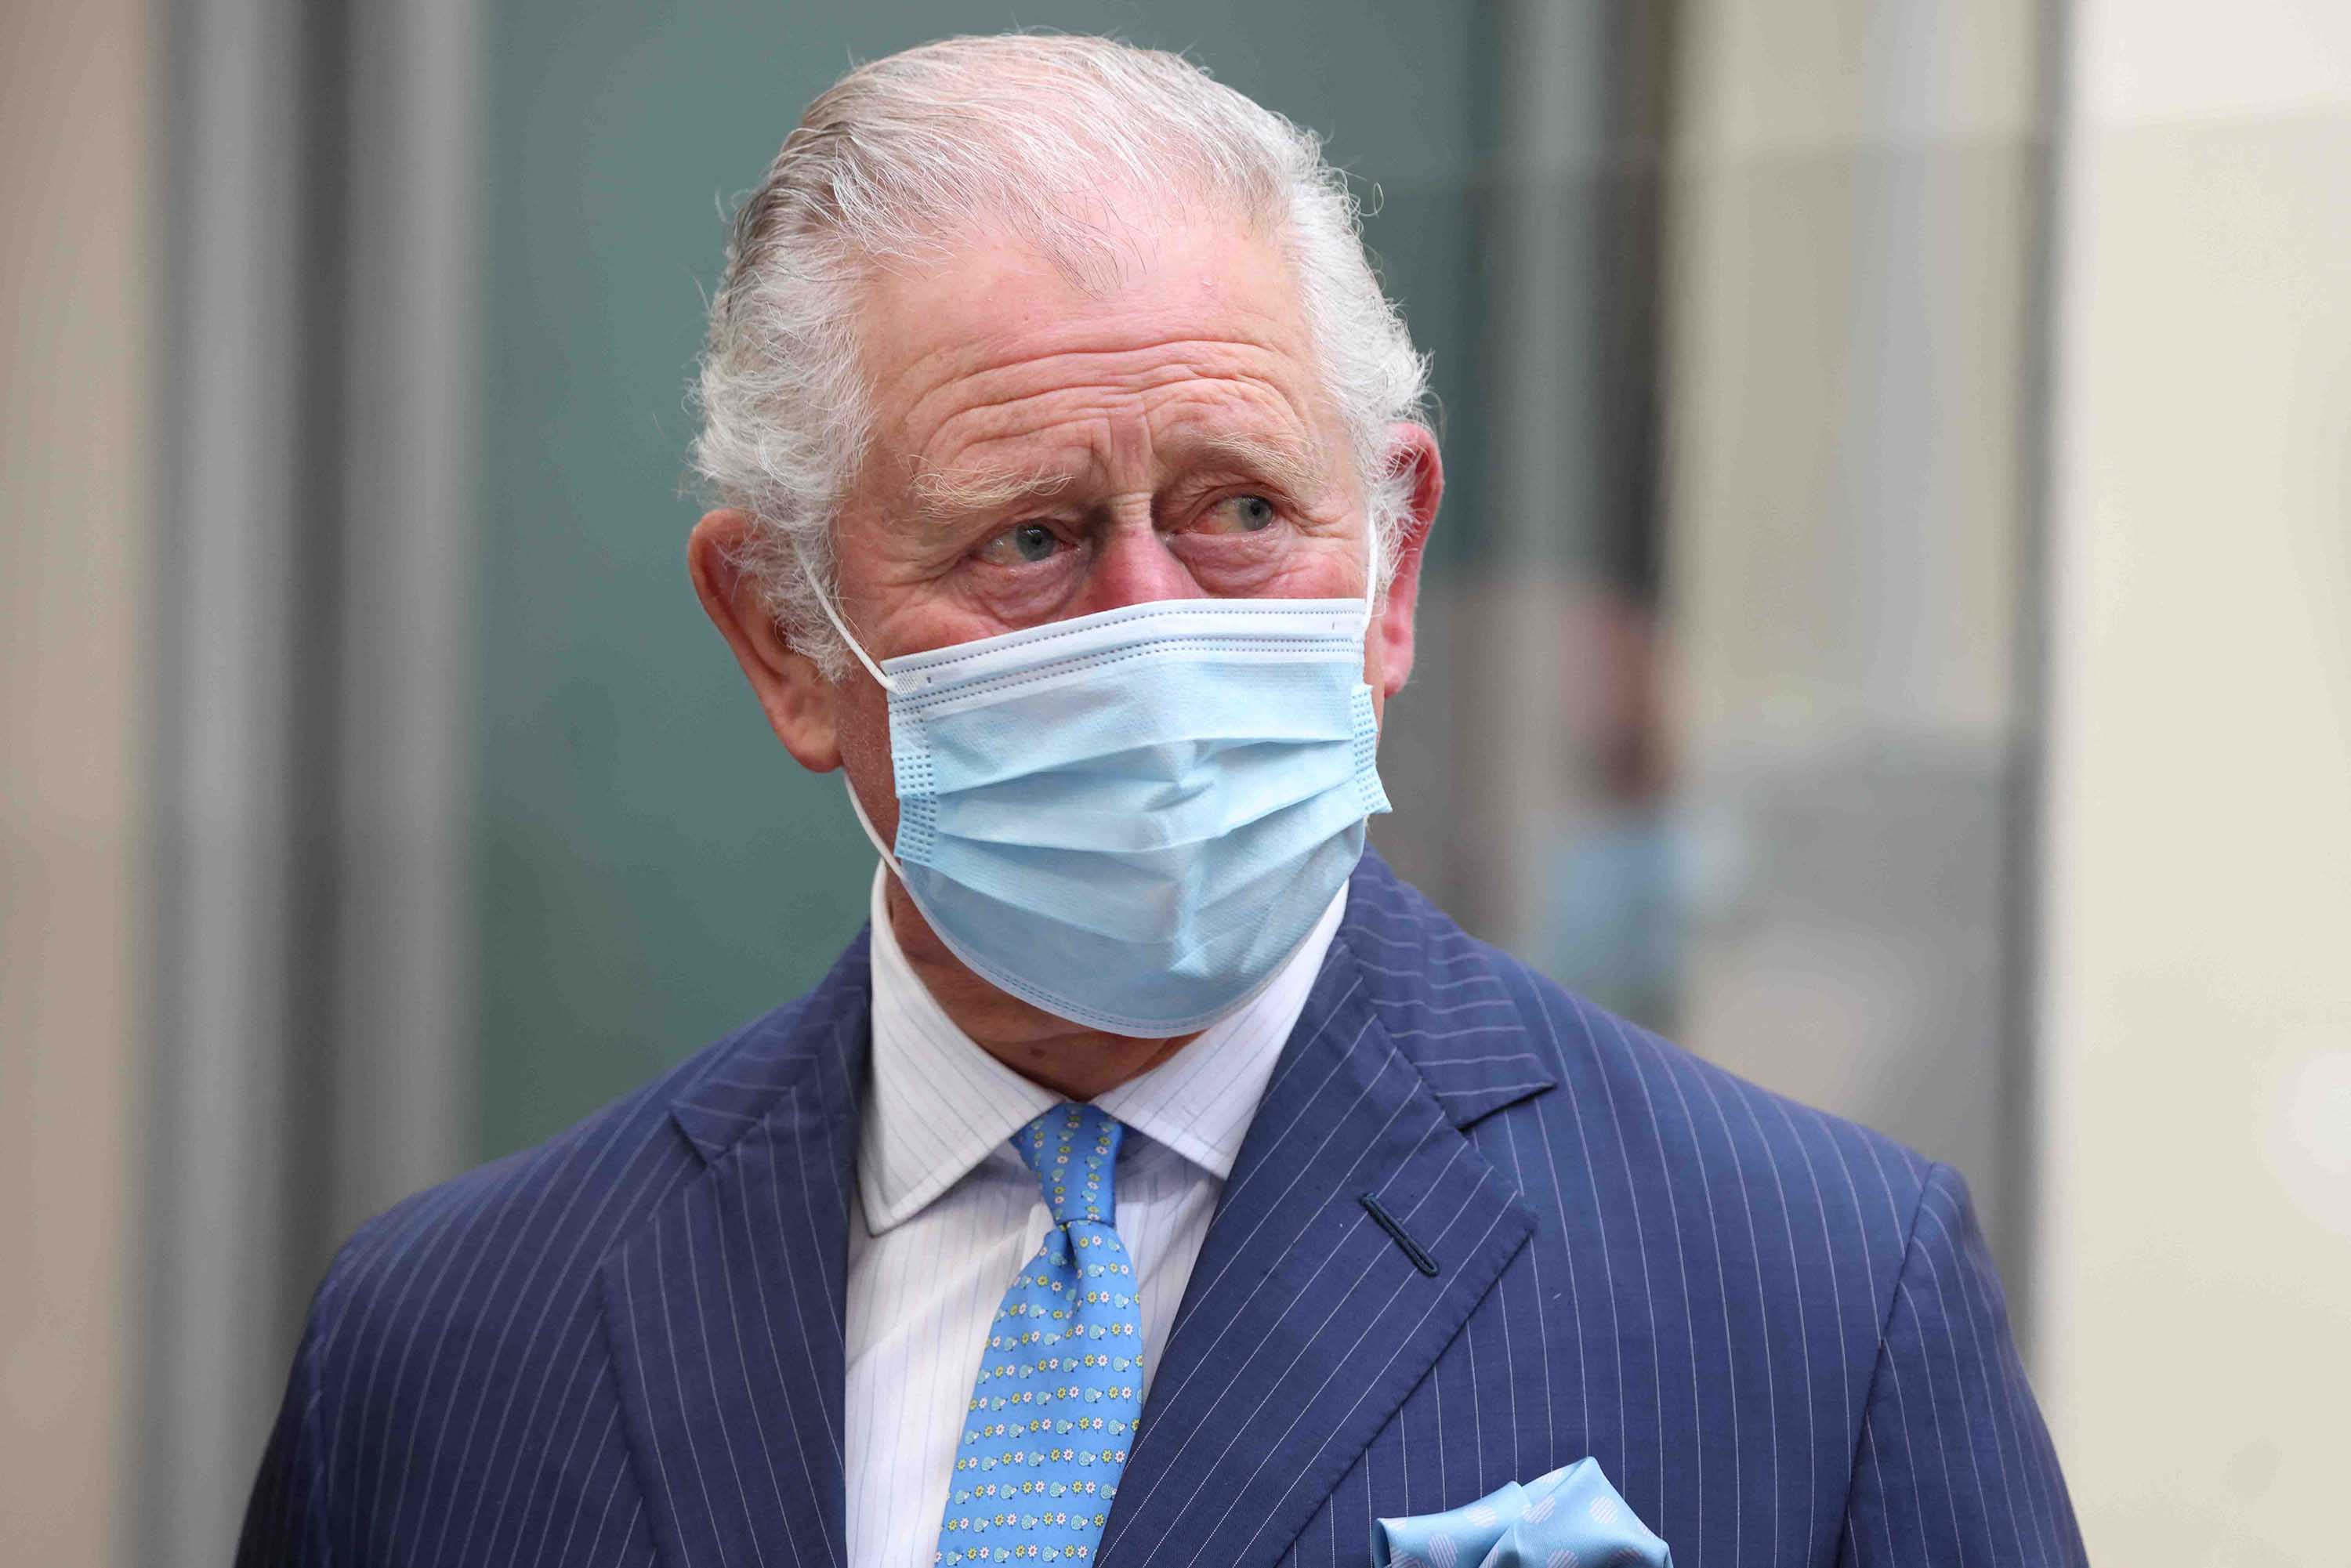 Britain's Prince Charles is pictured during a visit to a temporary NHS Covid-19 vaccine clinic in London, on March 9.